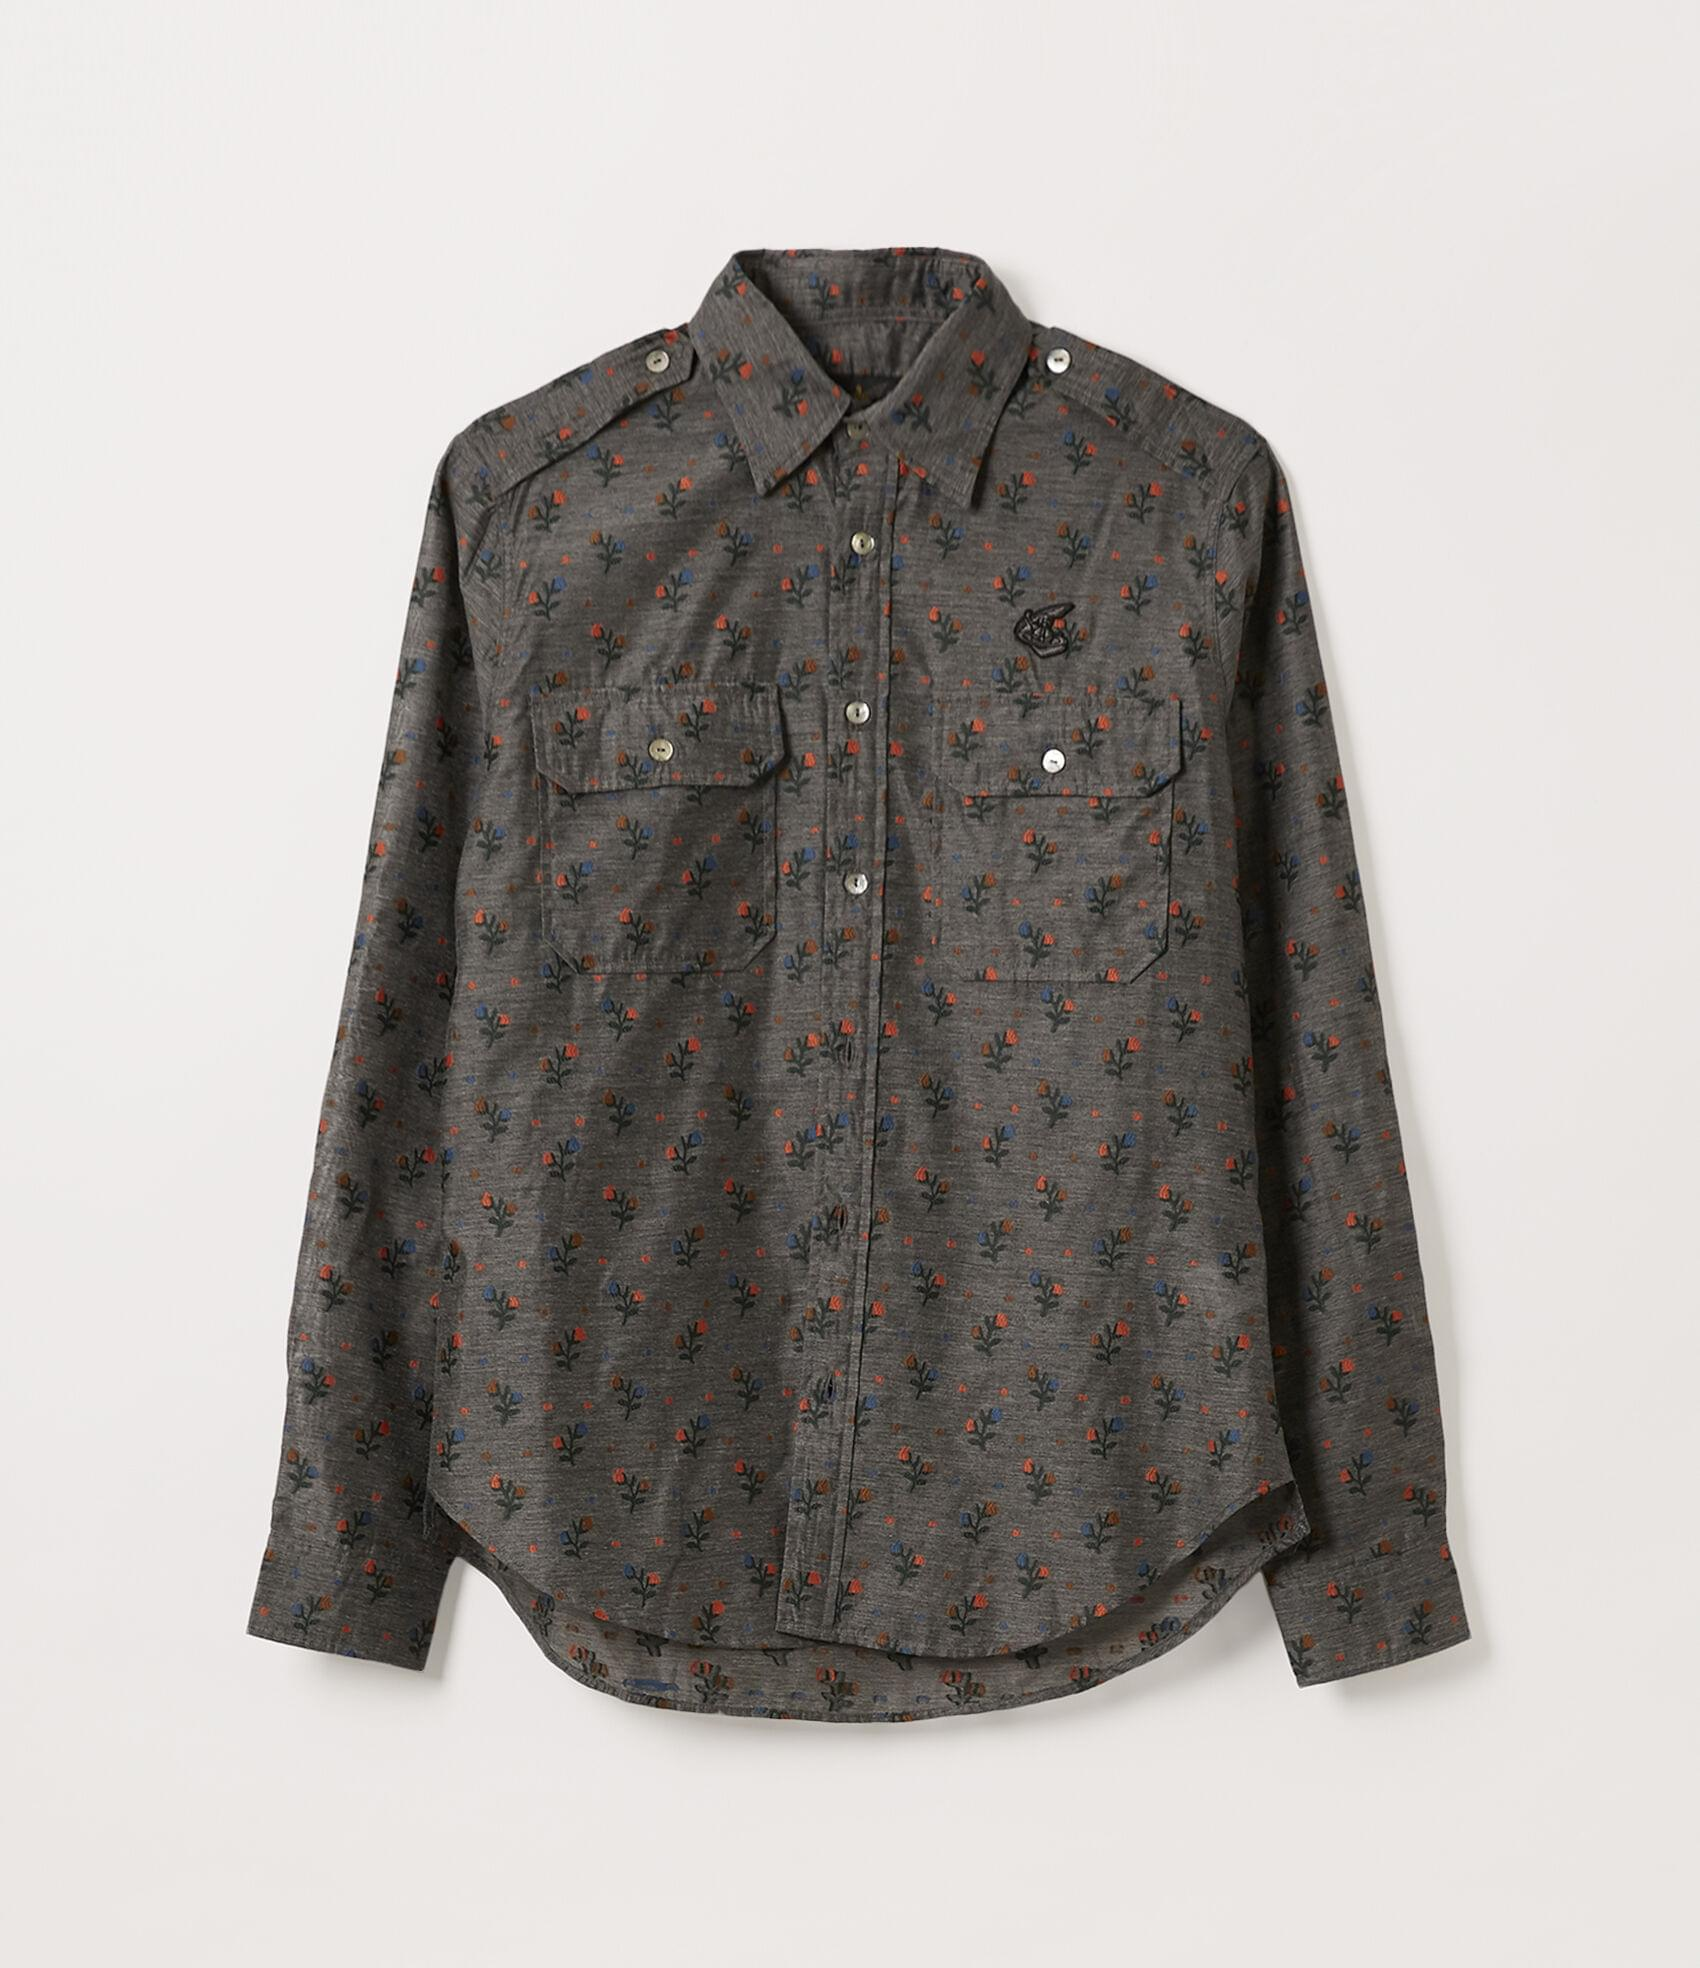 Vivienne Westwood NEW ARMY SHIRT GREY